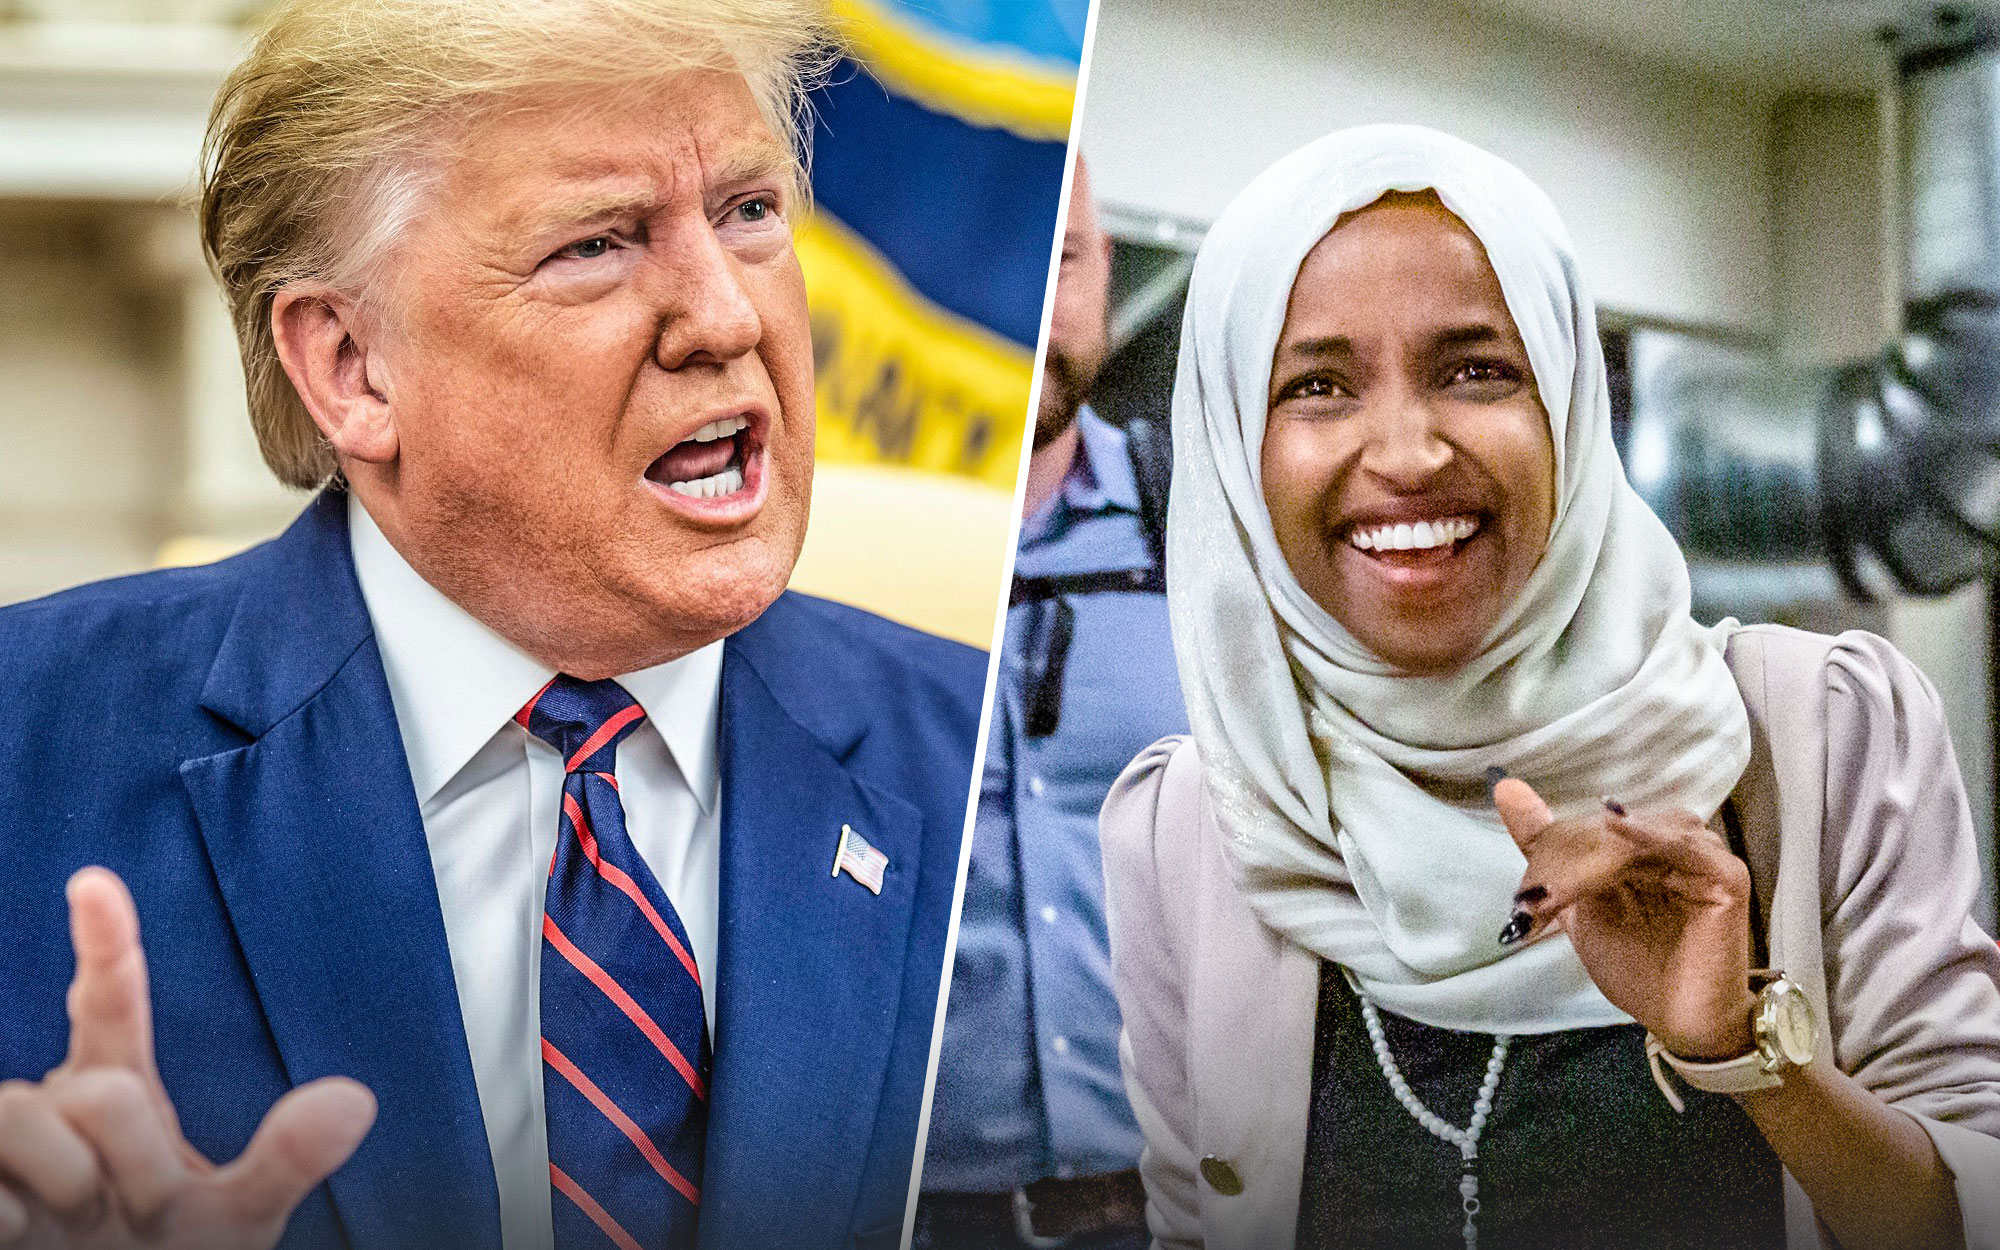 Ilhan Omar: Trump 'Must Step Down,' Shares Story Calling Killing of Soleimani 'Immoral'